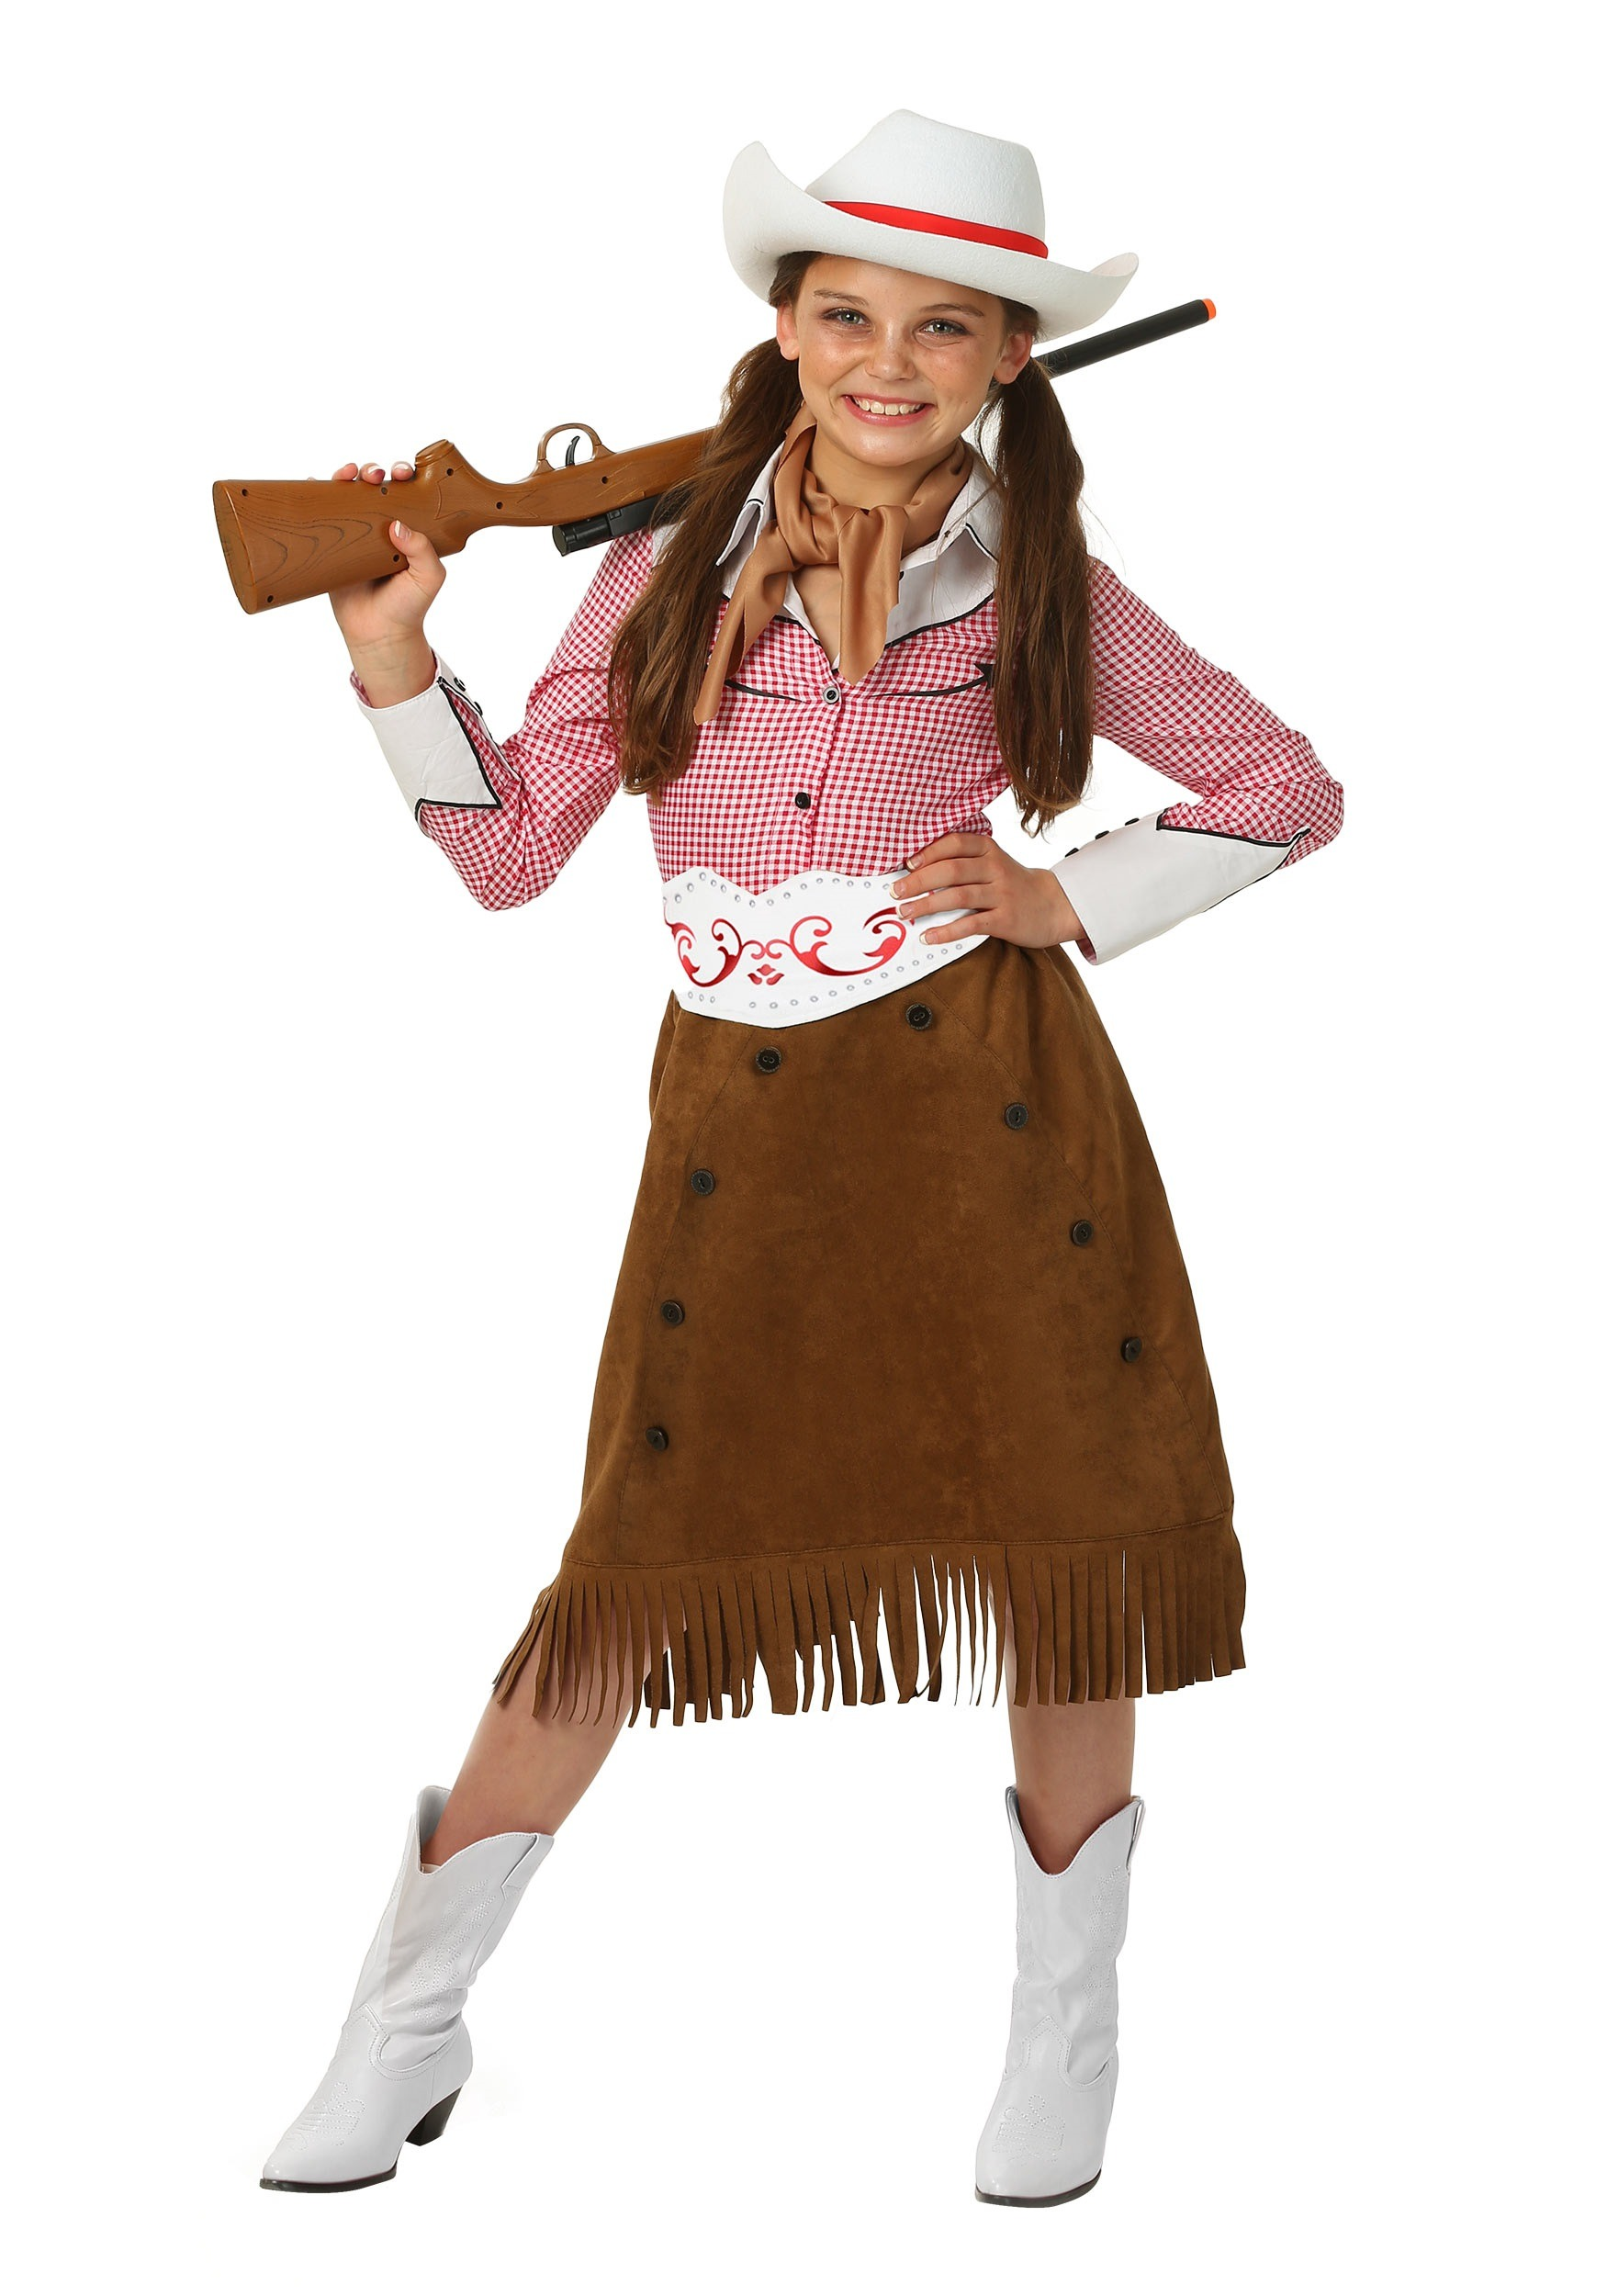 Cowboy costume for girls - photo#15